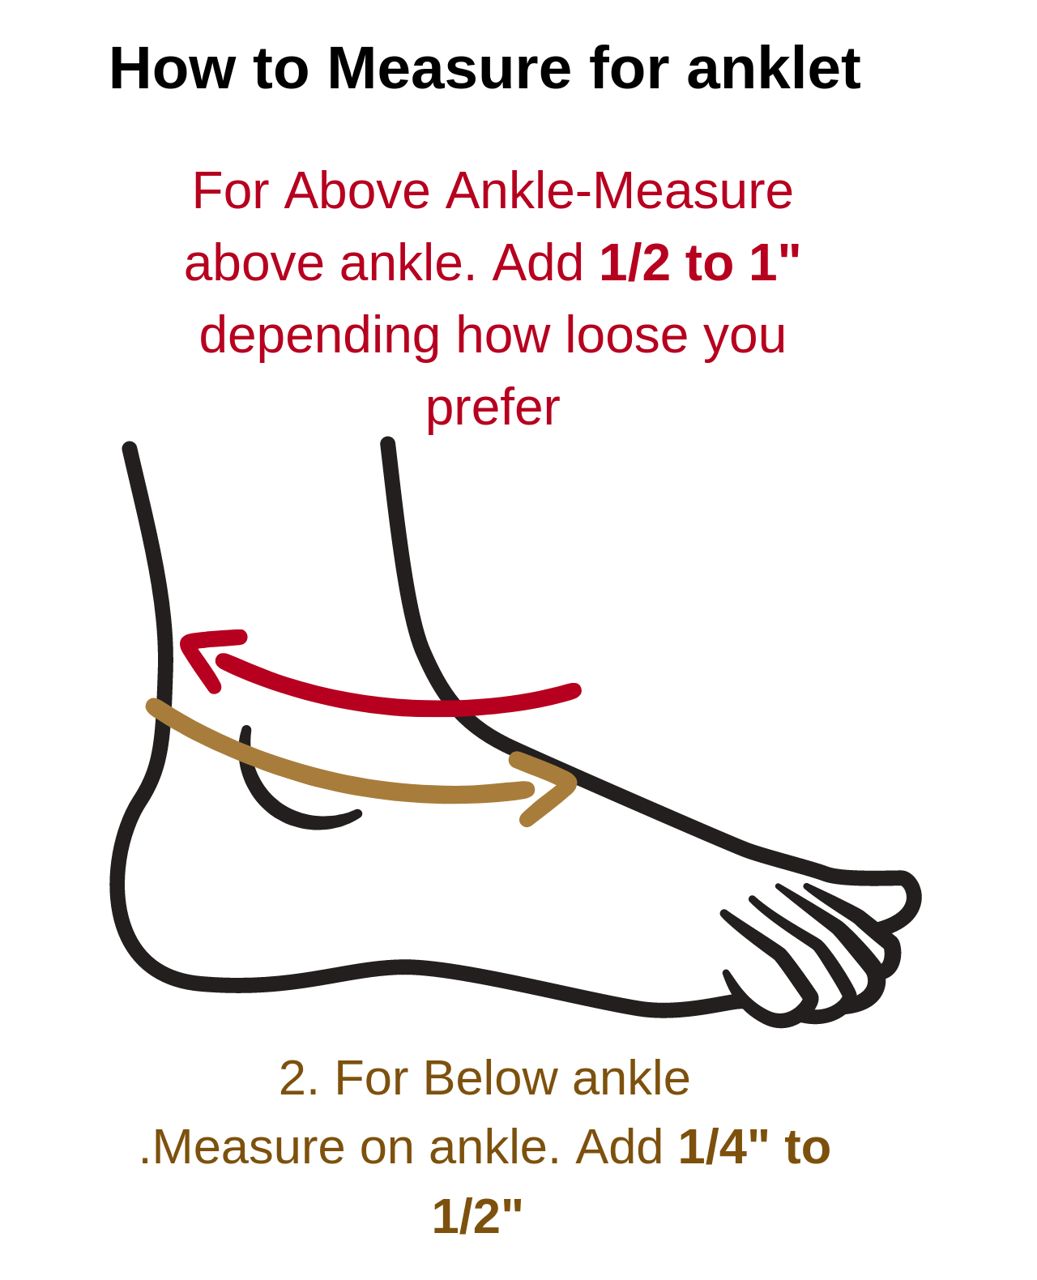 image of how to measure for anklet